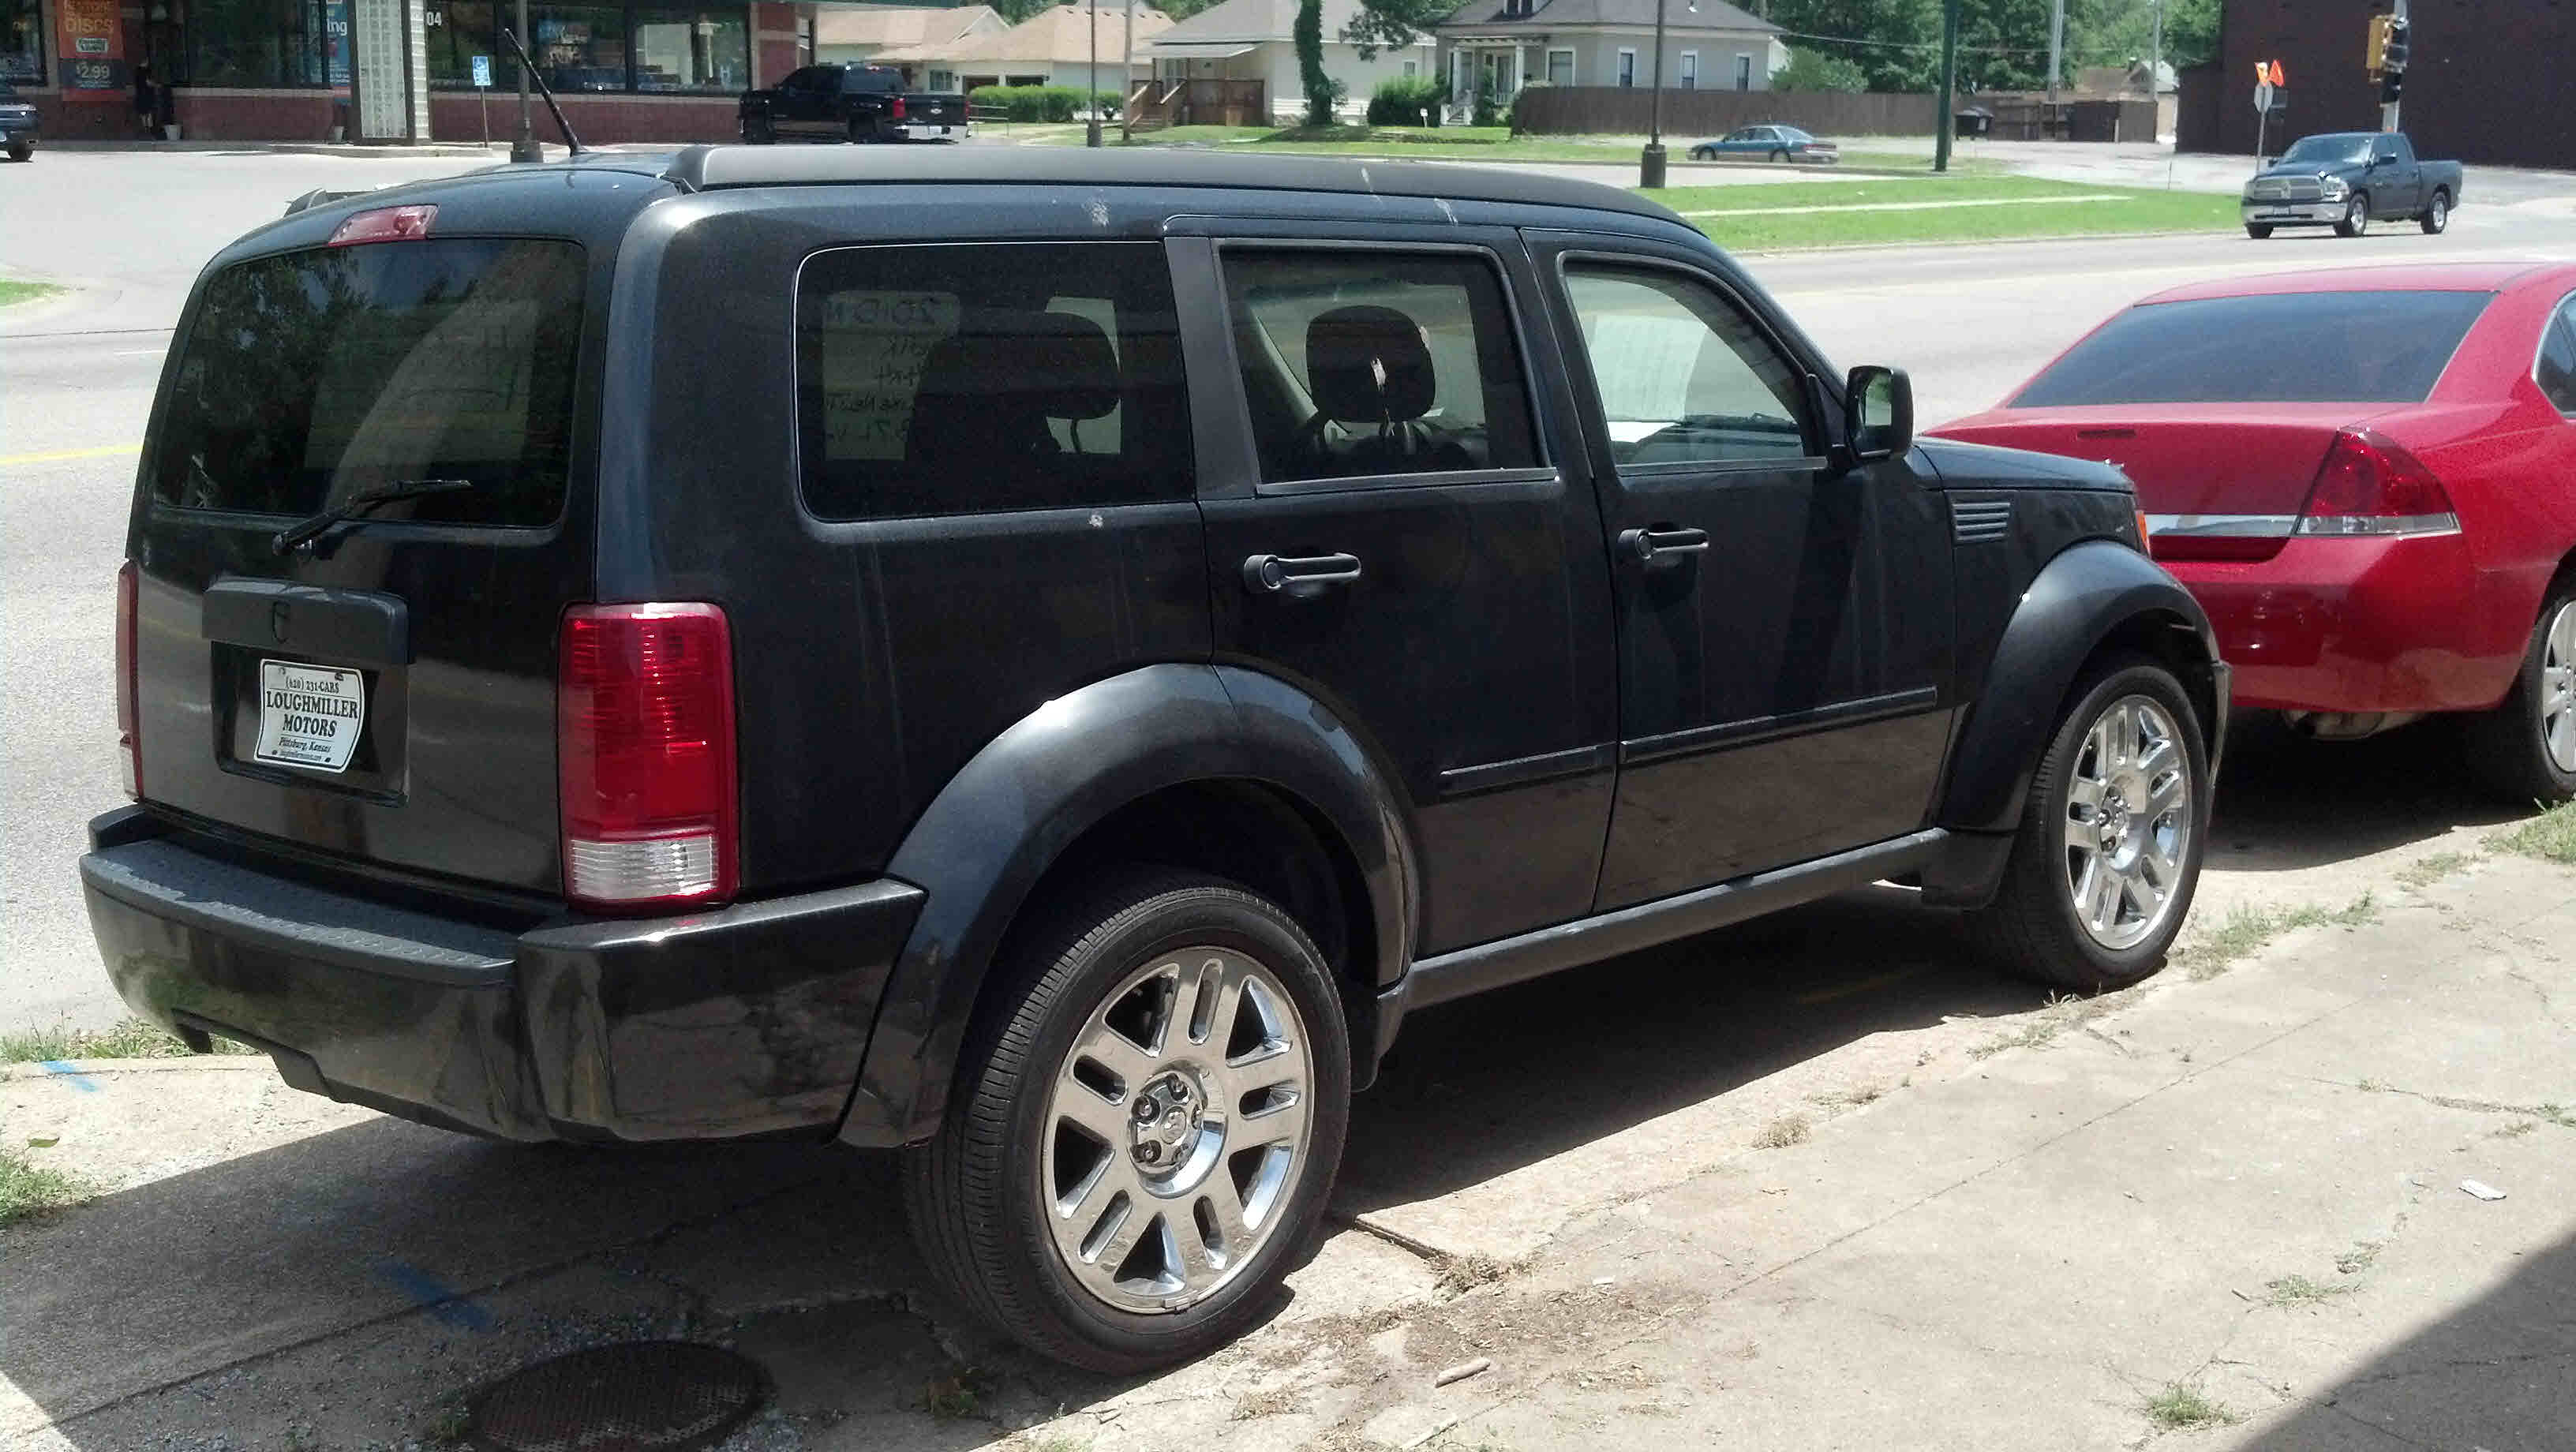 10blacknitro12g power locks windows mirrors 69153 miles theft recovery cosmetic damage was painted red with spray paint by the thief we removed the red paint publicscrutiny Choice Image